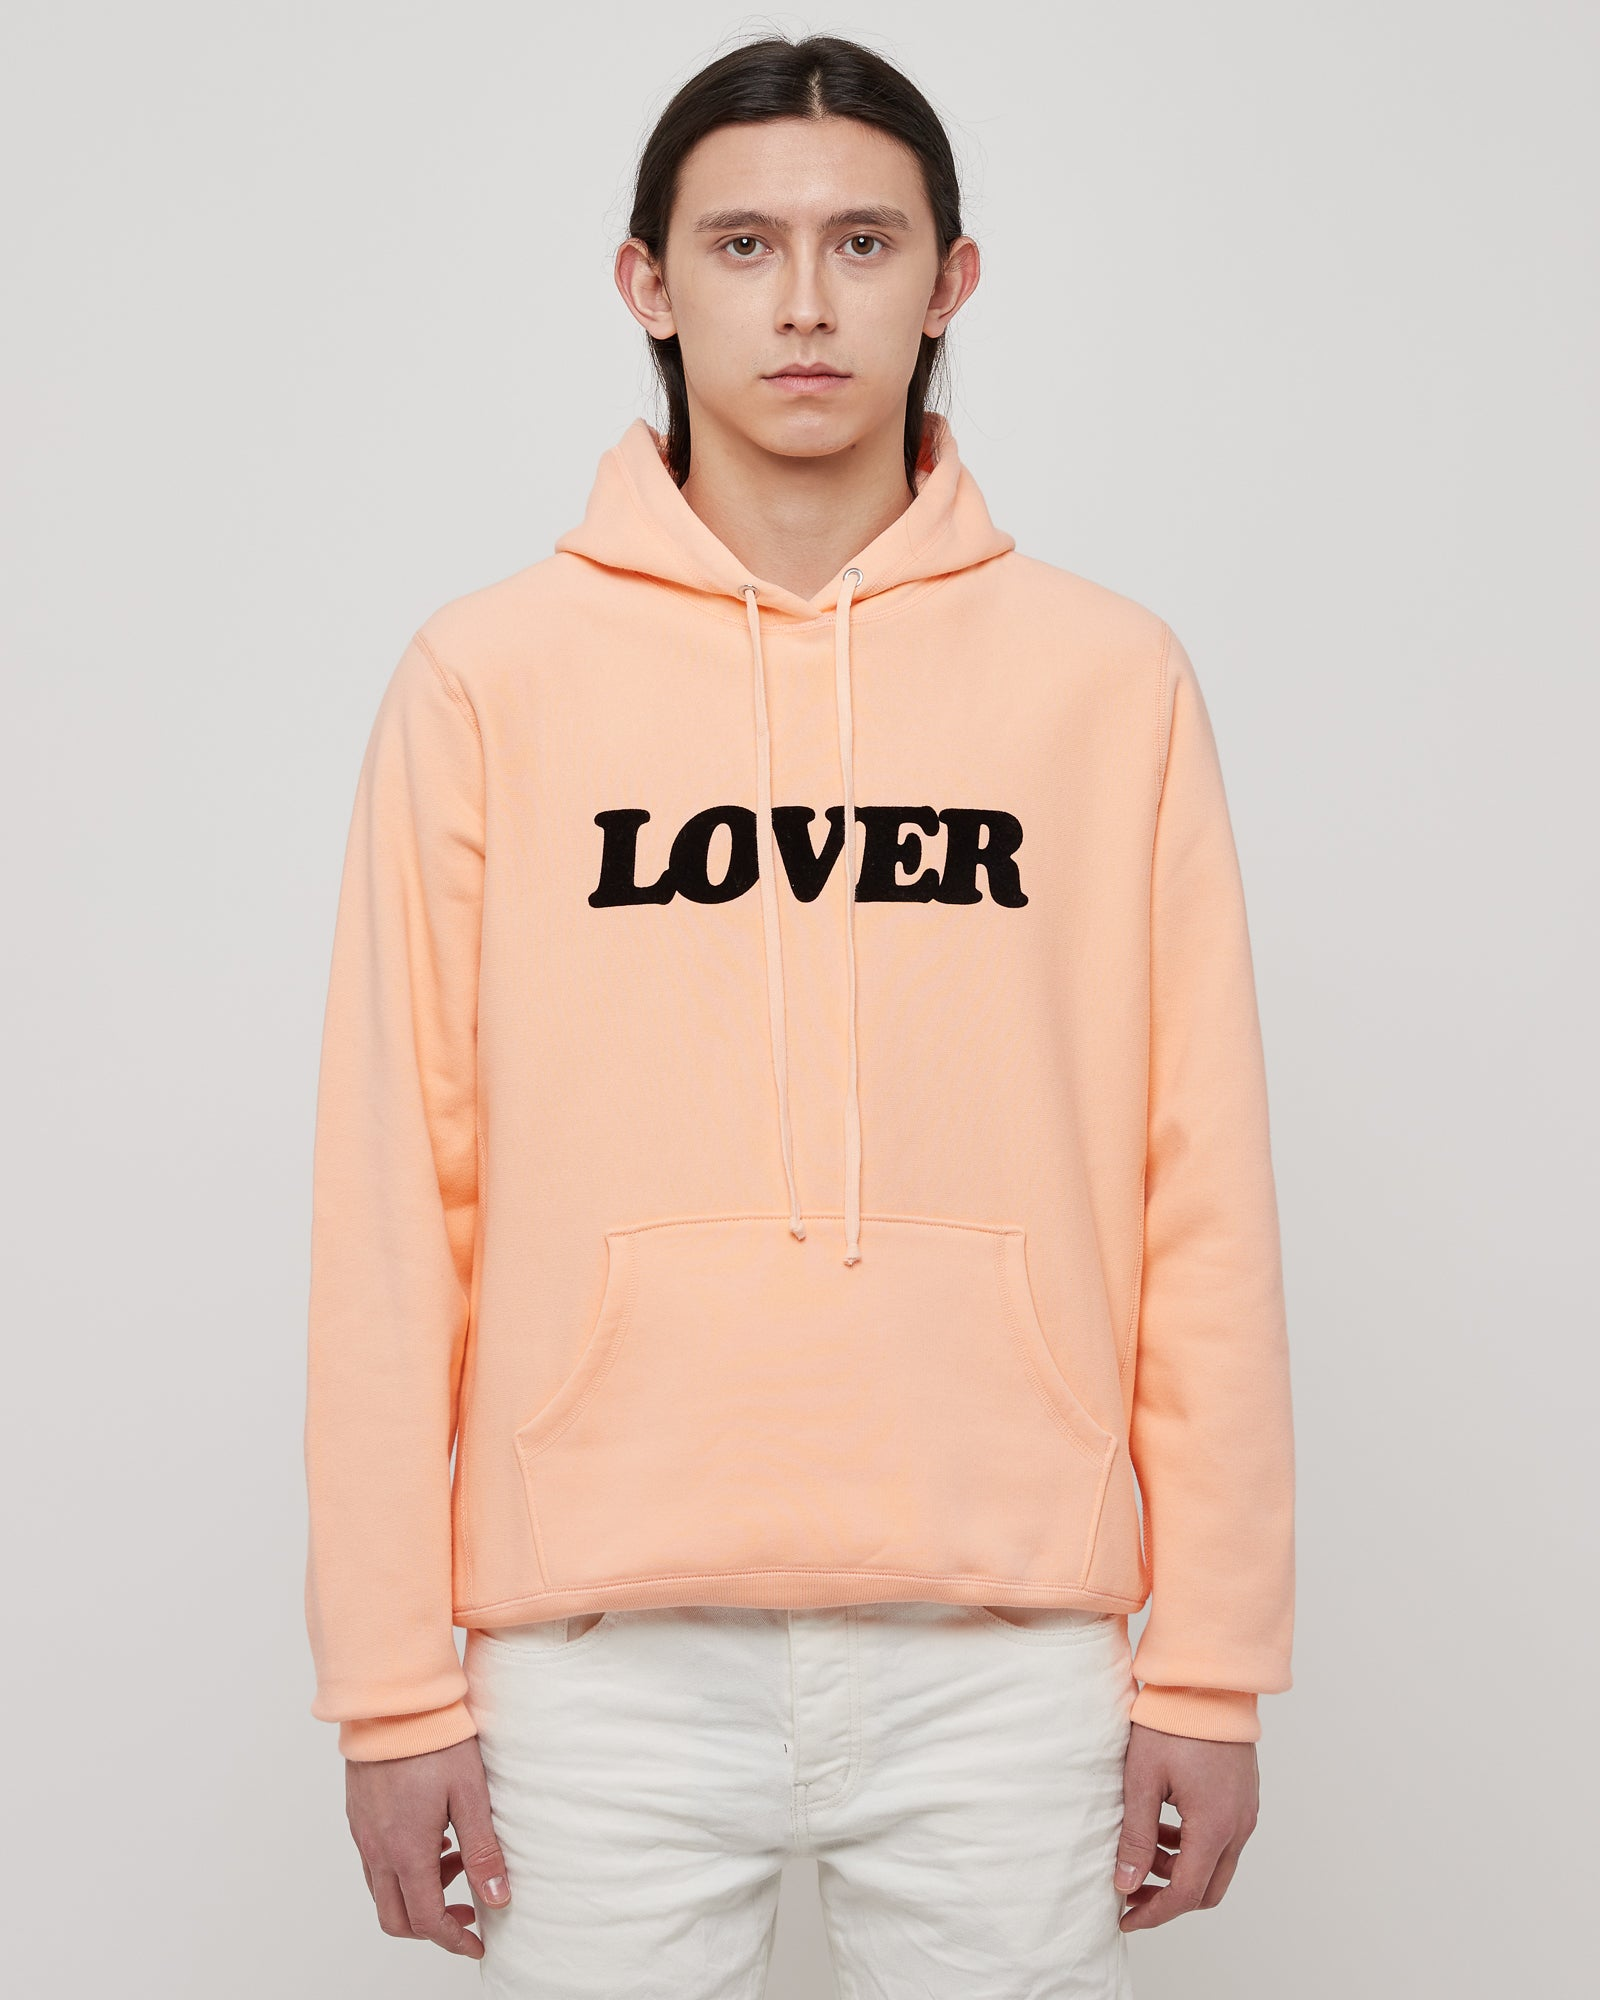 Lover Pullover Hoodie in Peach & Black